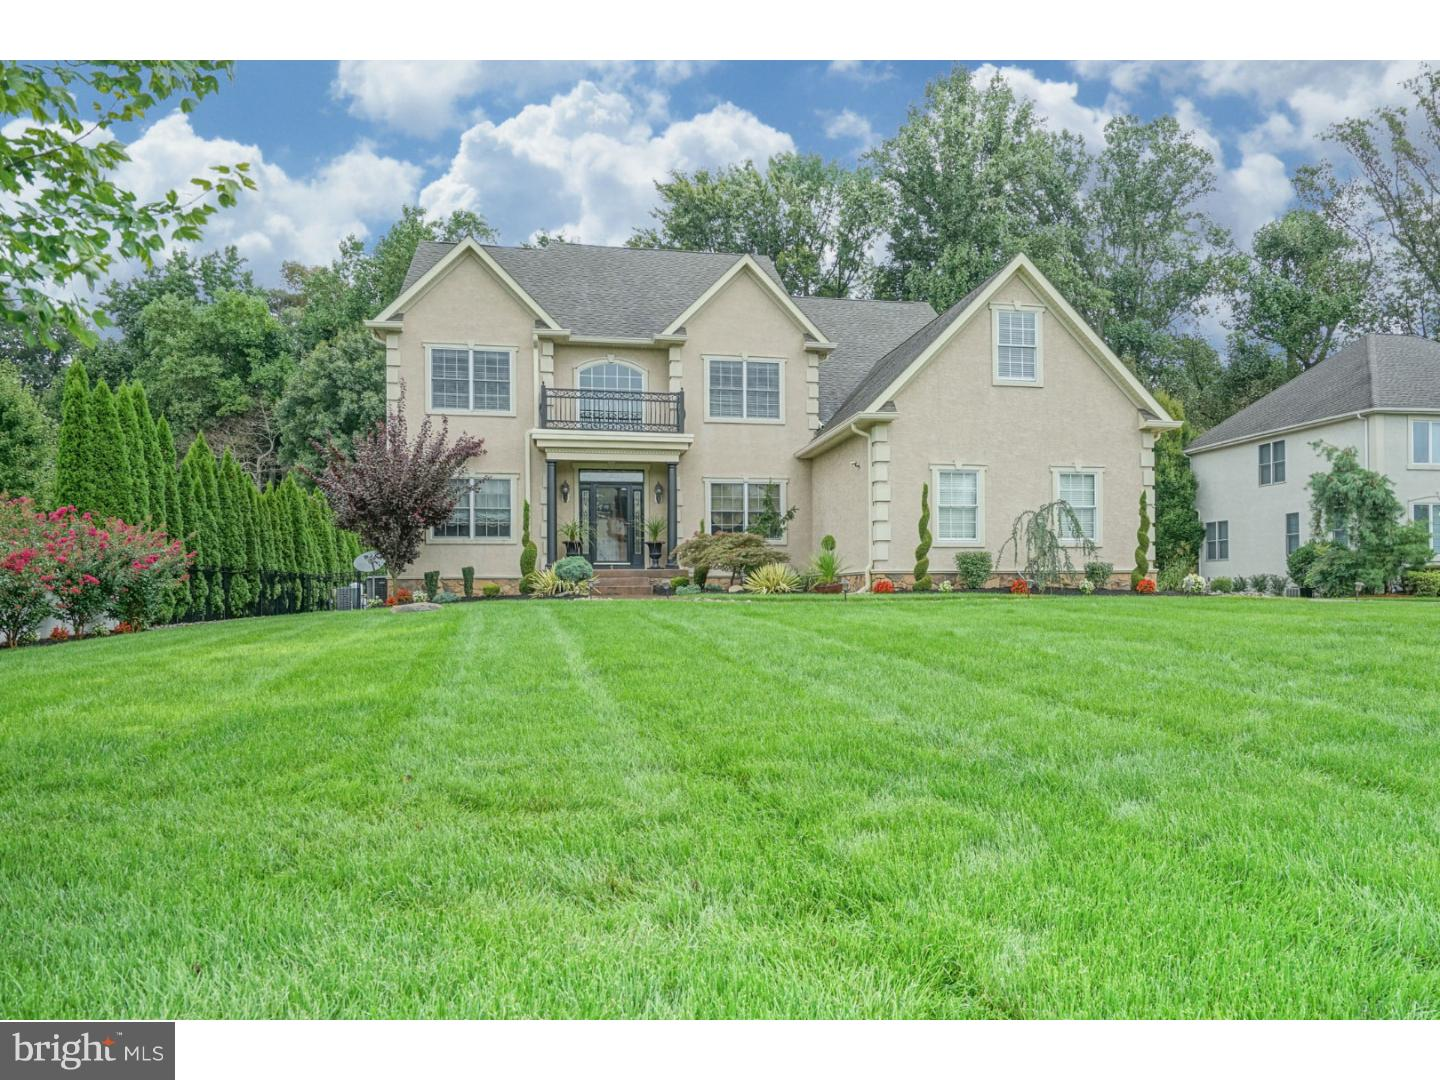 1 CHRYSANTHEMUM COURT, SEWELL, NJ 08080